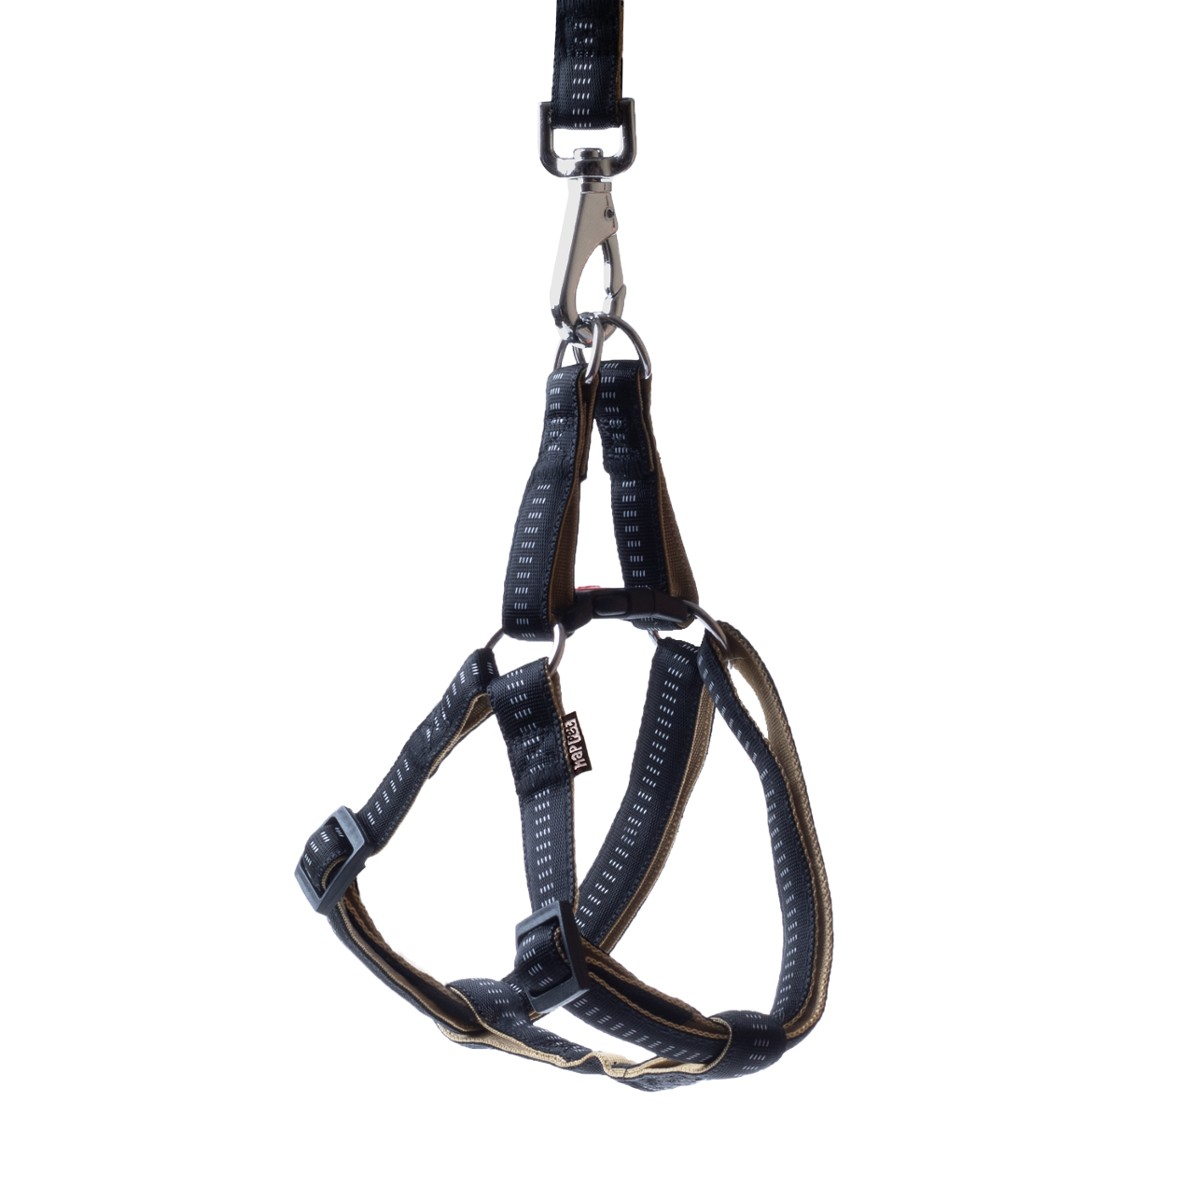 Soft nylon harness black size XL 2.5cm